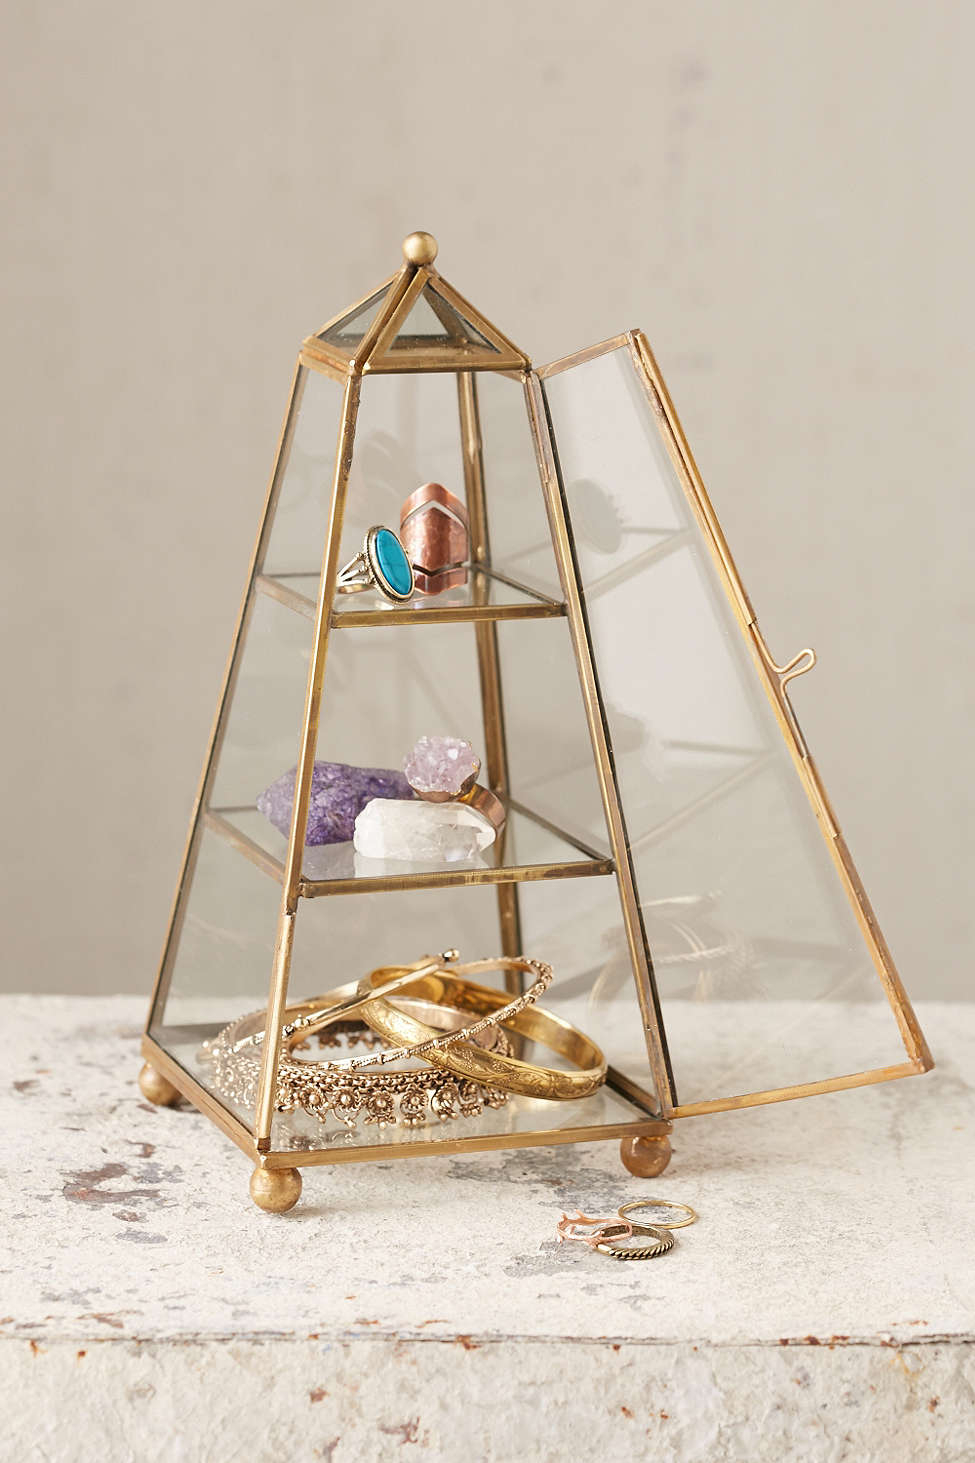 Glass tower from Urban Outfitters